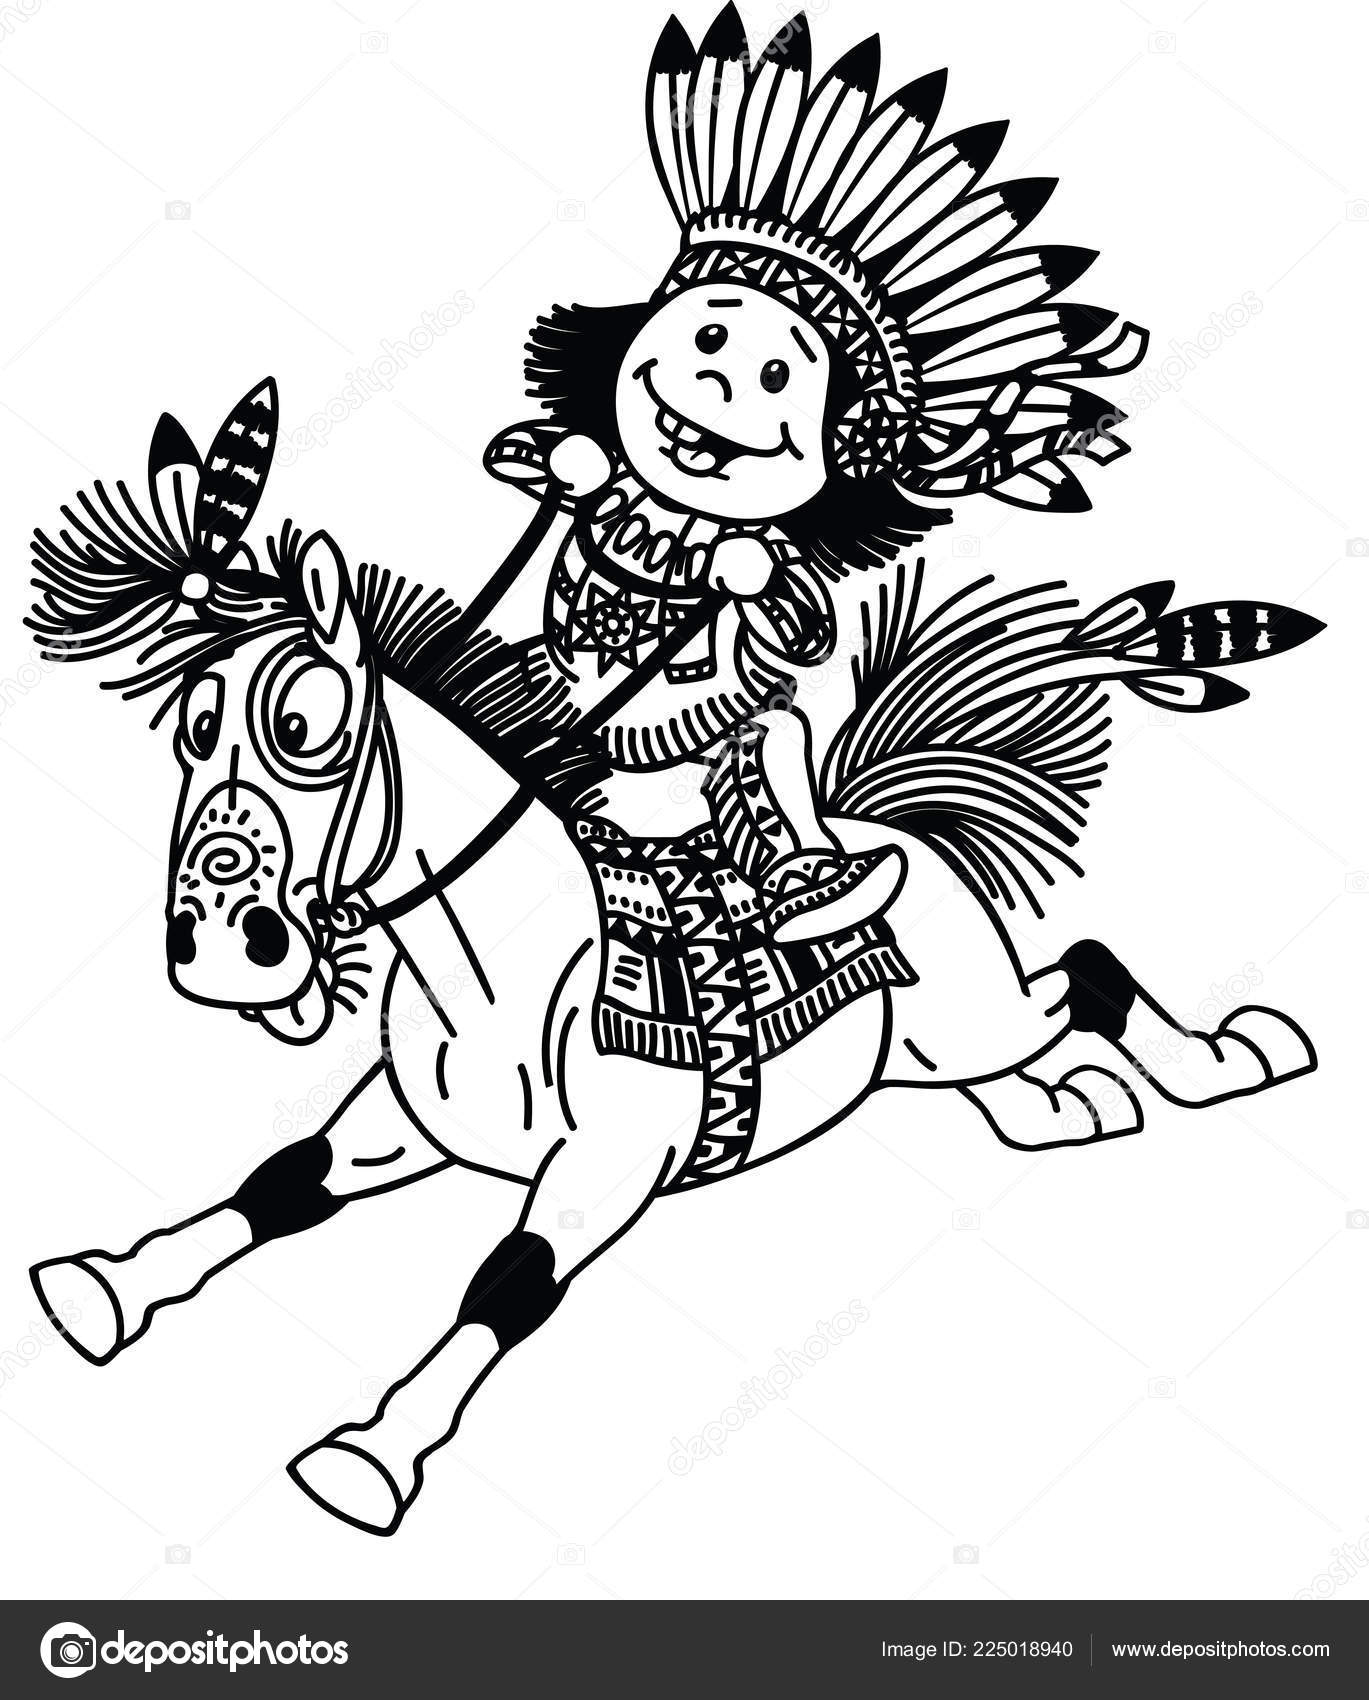 Native American Horse Costume Cartoon Kid Wearing Native Indian Costume Riding Mustang Pony Horse Stock Vector C Insima 225018940